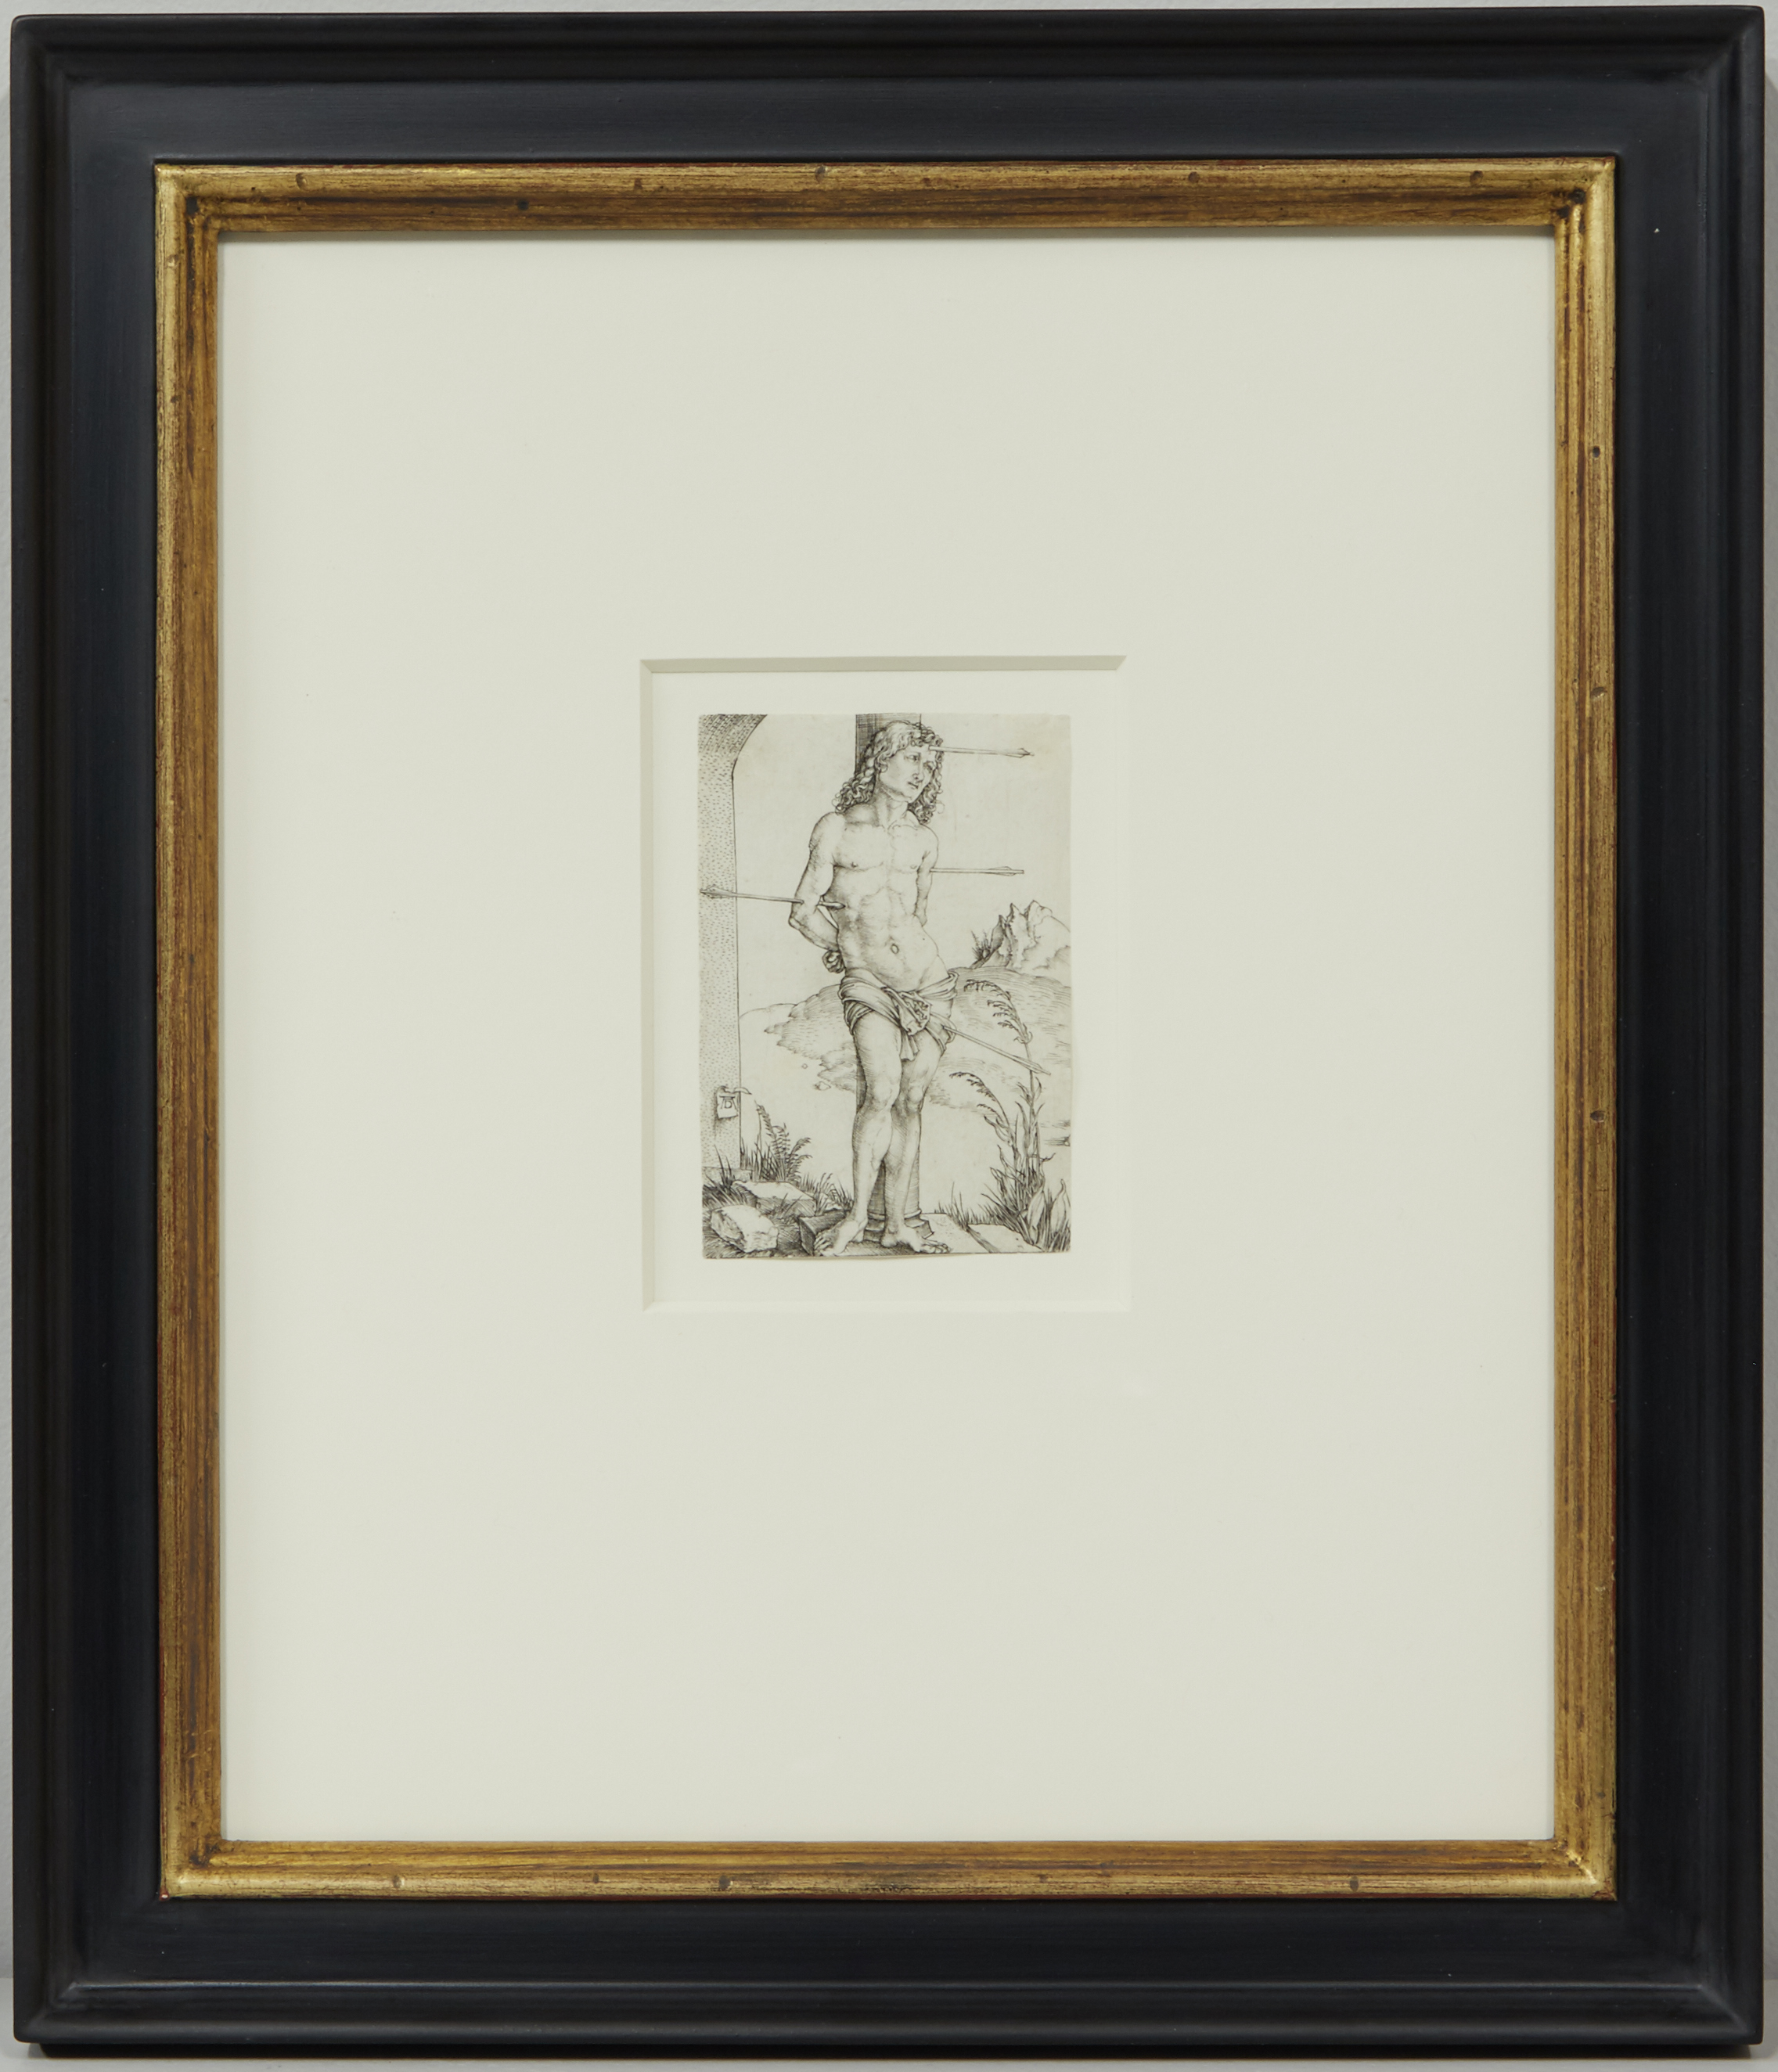 This piece by Albrecht Dürer was assembled with Conservation Clear glass, which protects against UV light rays, and was installed into a custom antique black profile frame with a gold lip.